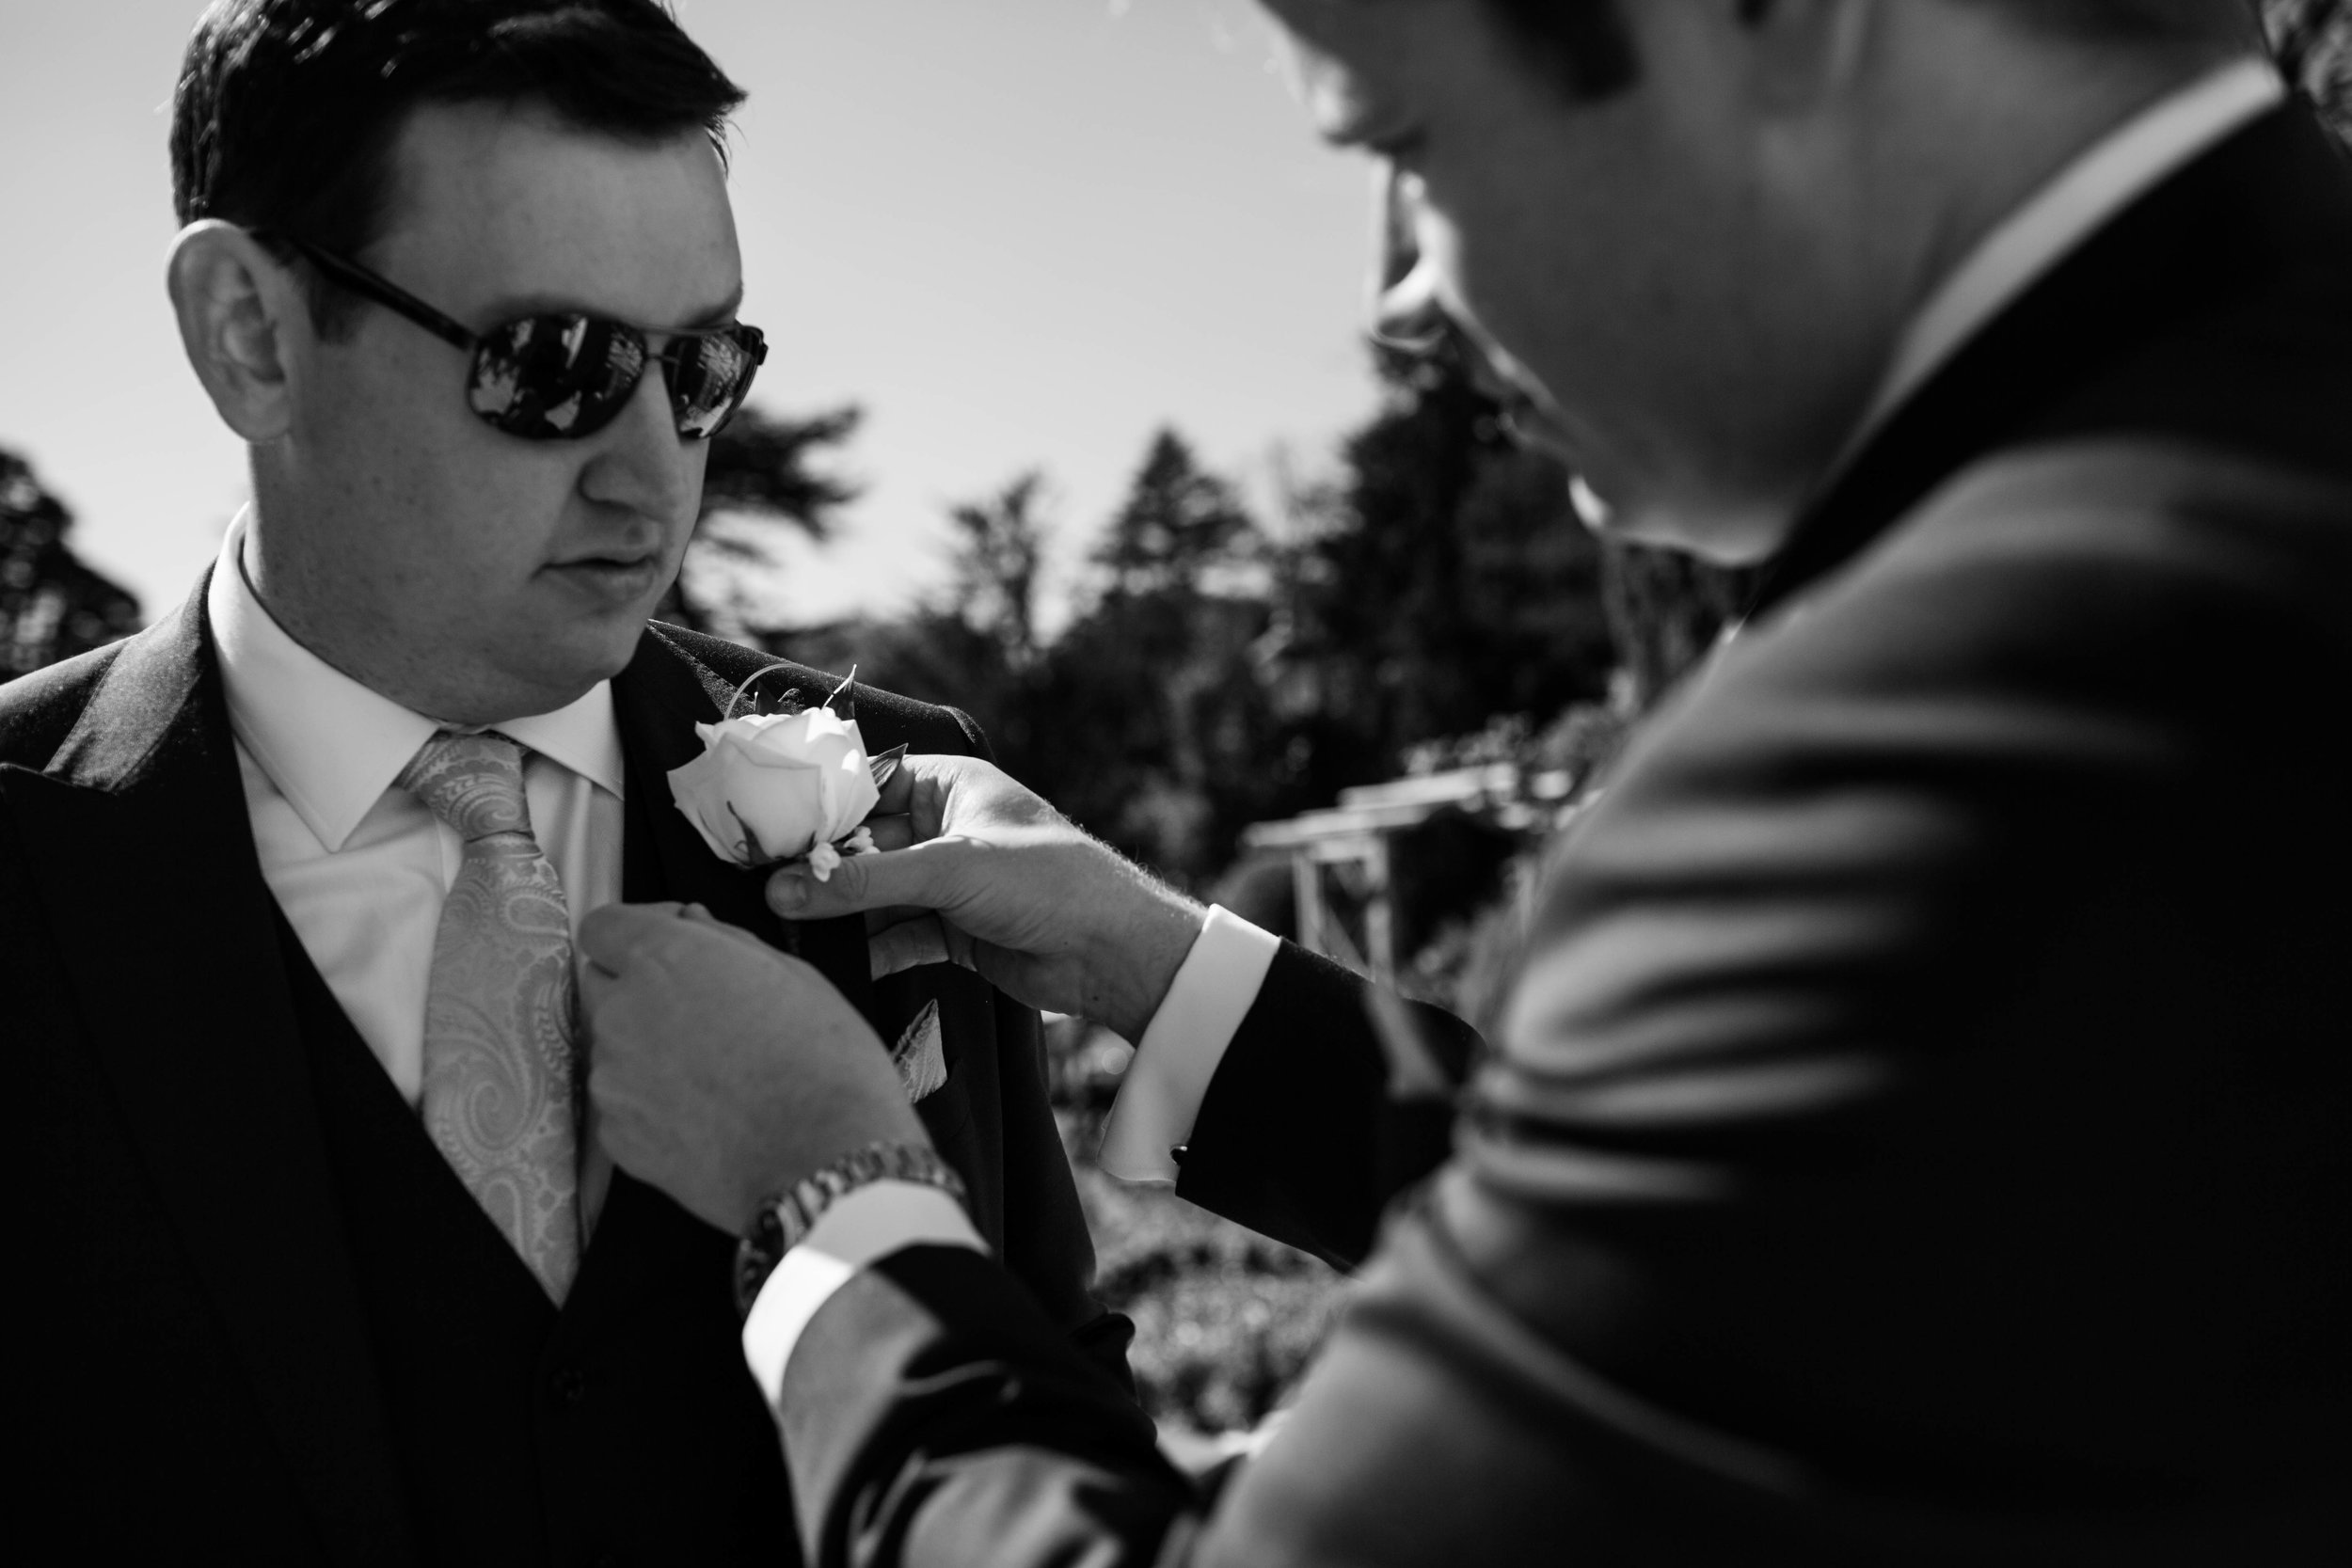 NLPhotography_Taplow_House-Wedding_Photographer_Emily&Alan_BnW-199.jpg